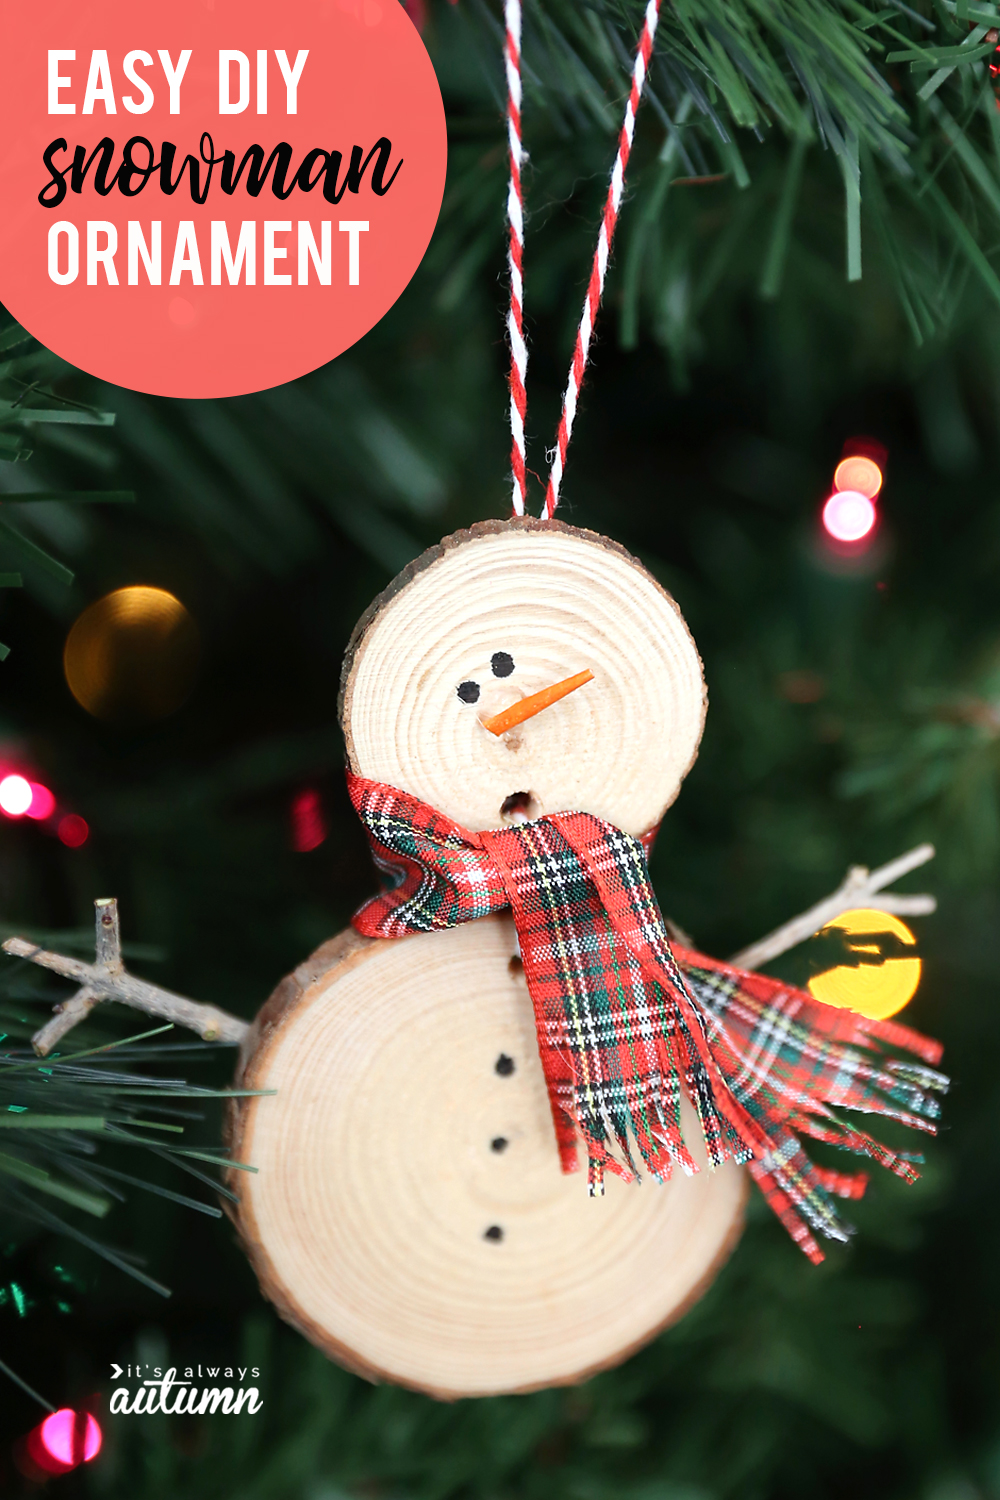 Snowman Christmas ornament made from small wood slices